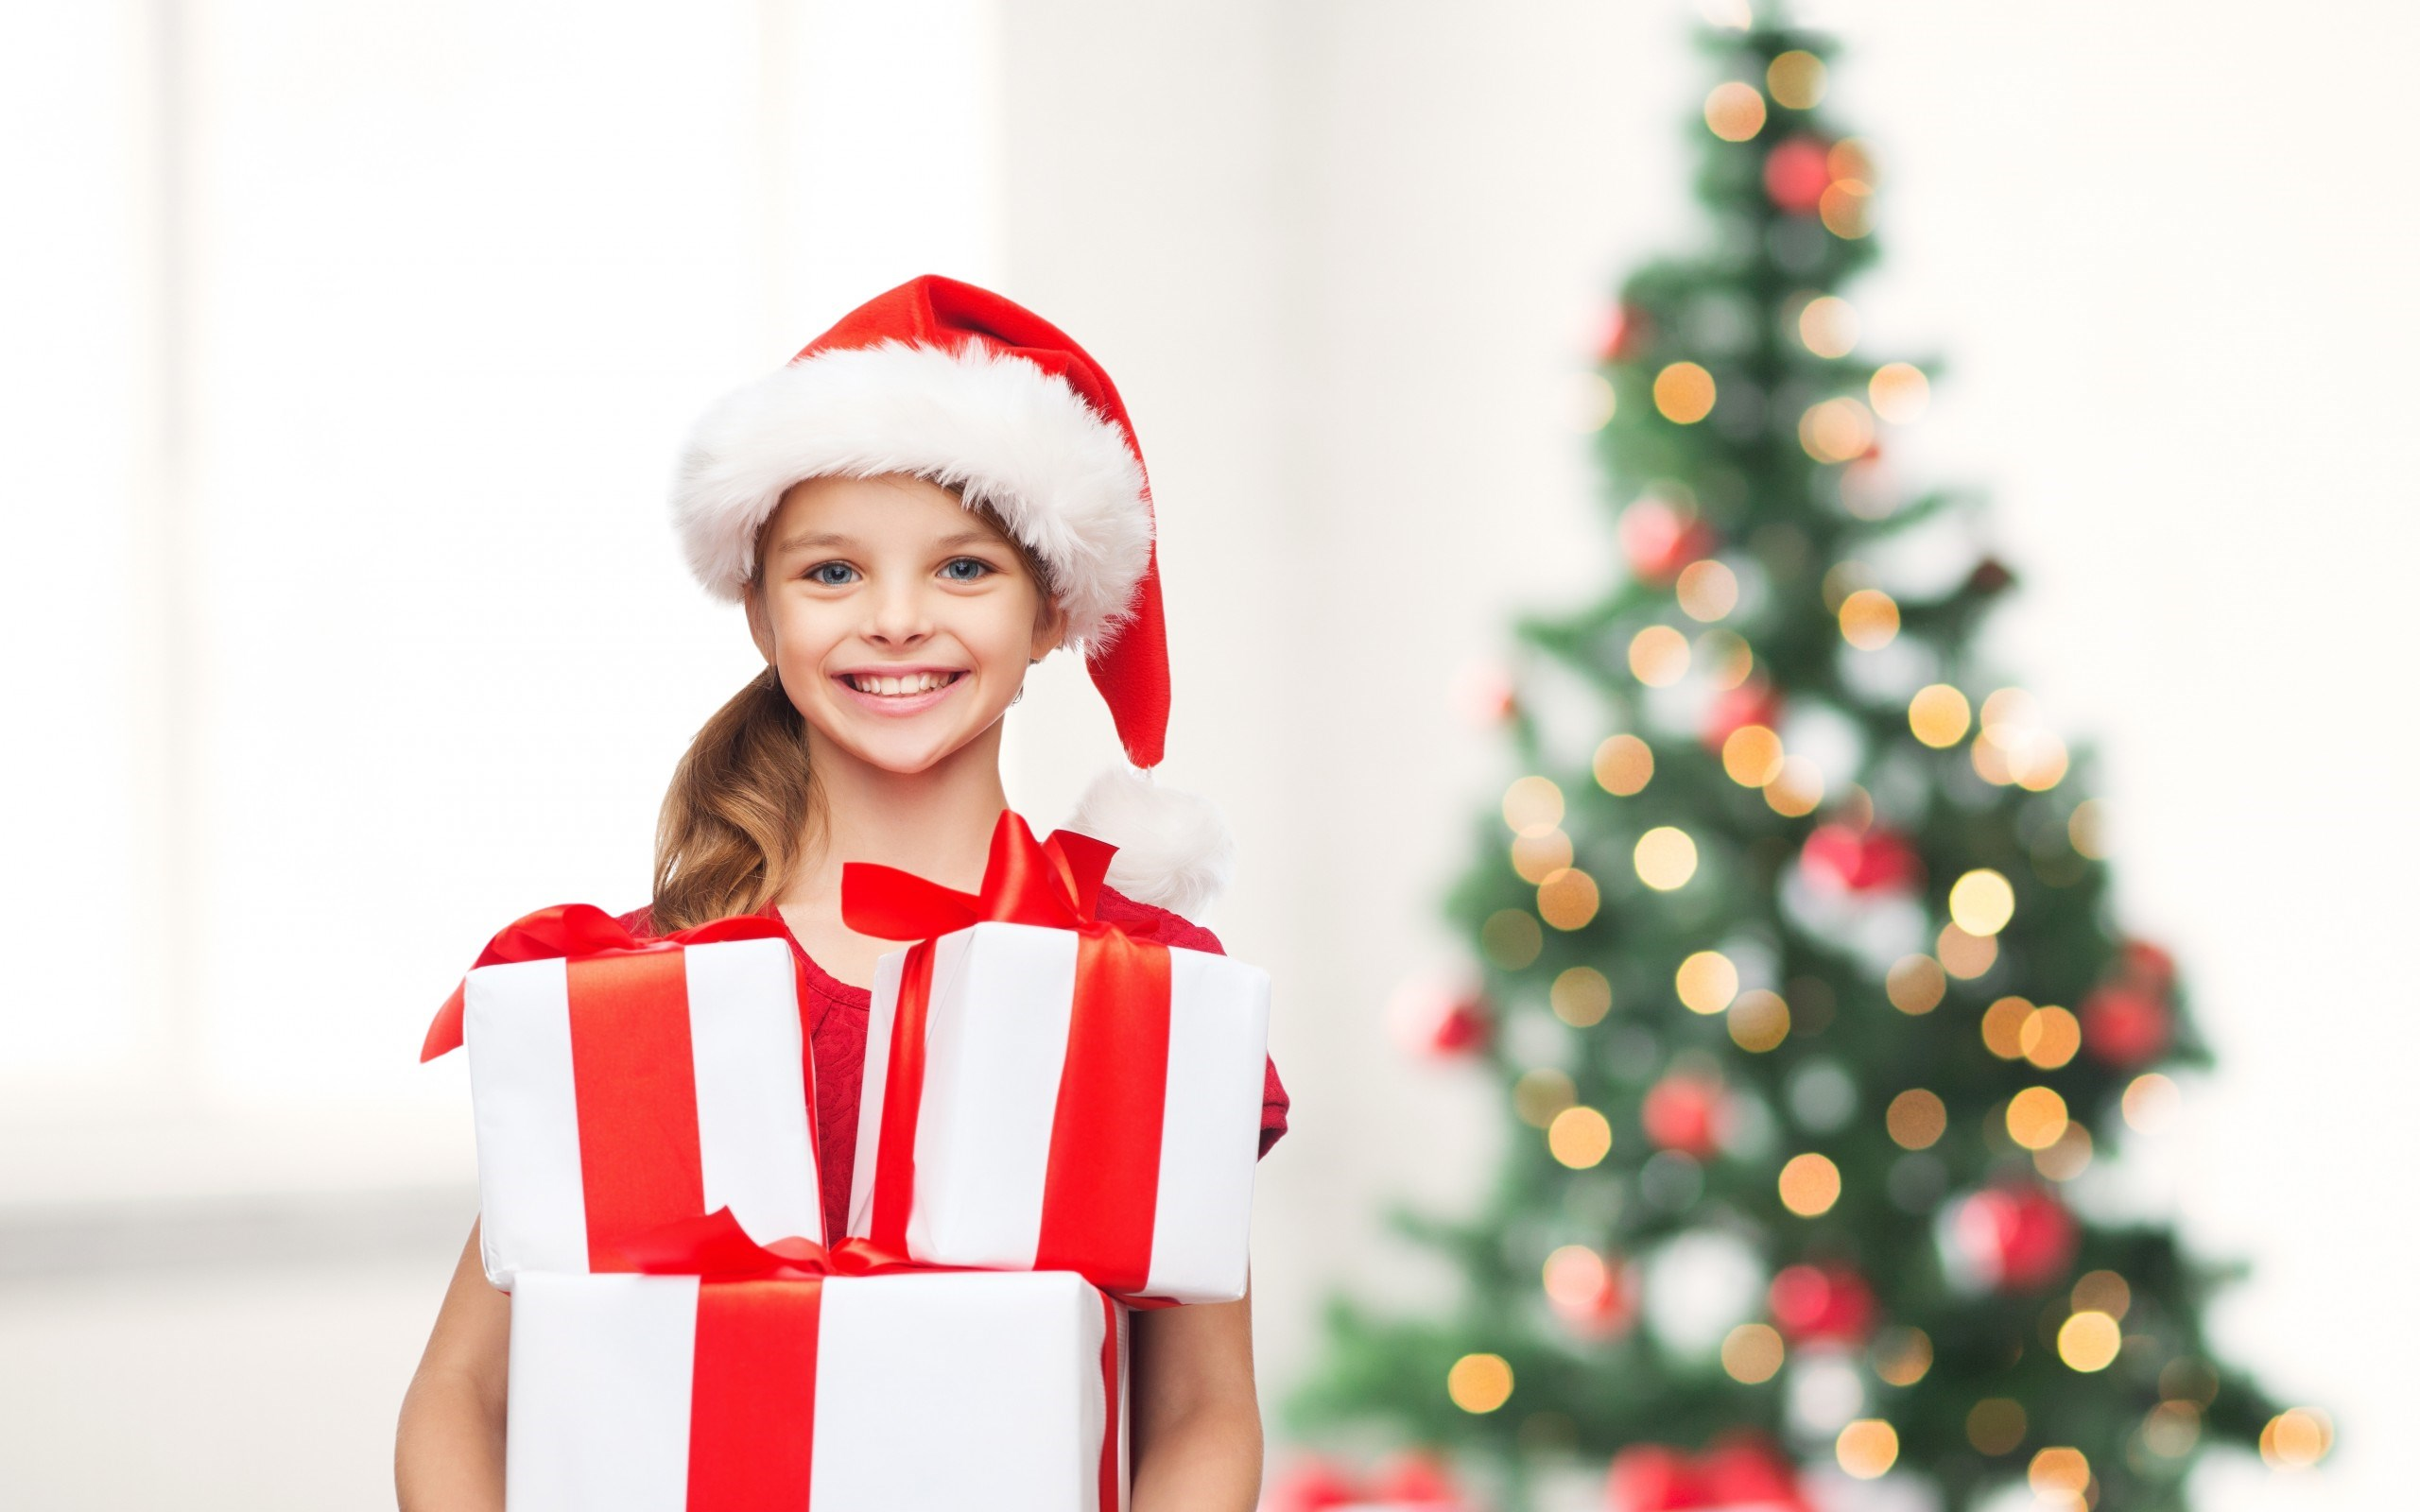 Merry Christmas Tree Little Girl Happy Smile Child Gifts ...